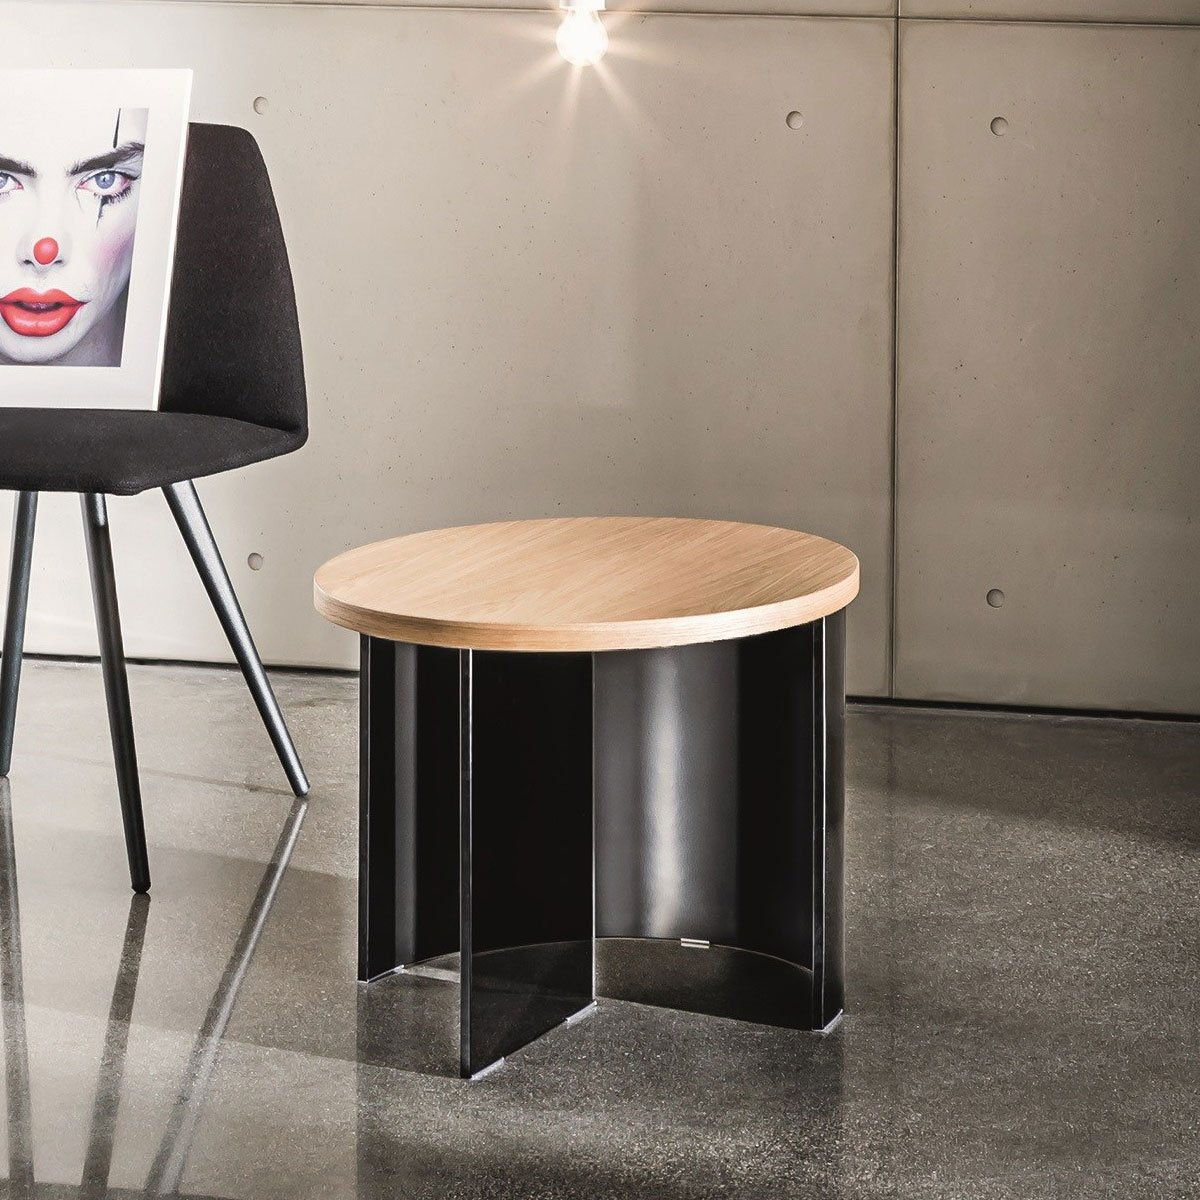 Bespoke Glass Coffee Tables: Regolo Round Glass Coffee Table